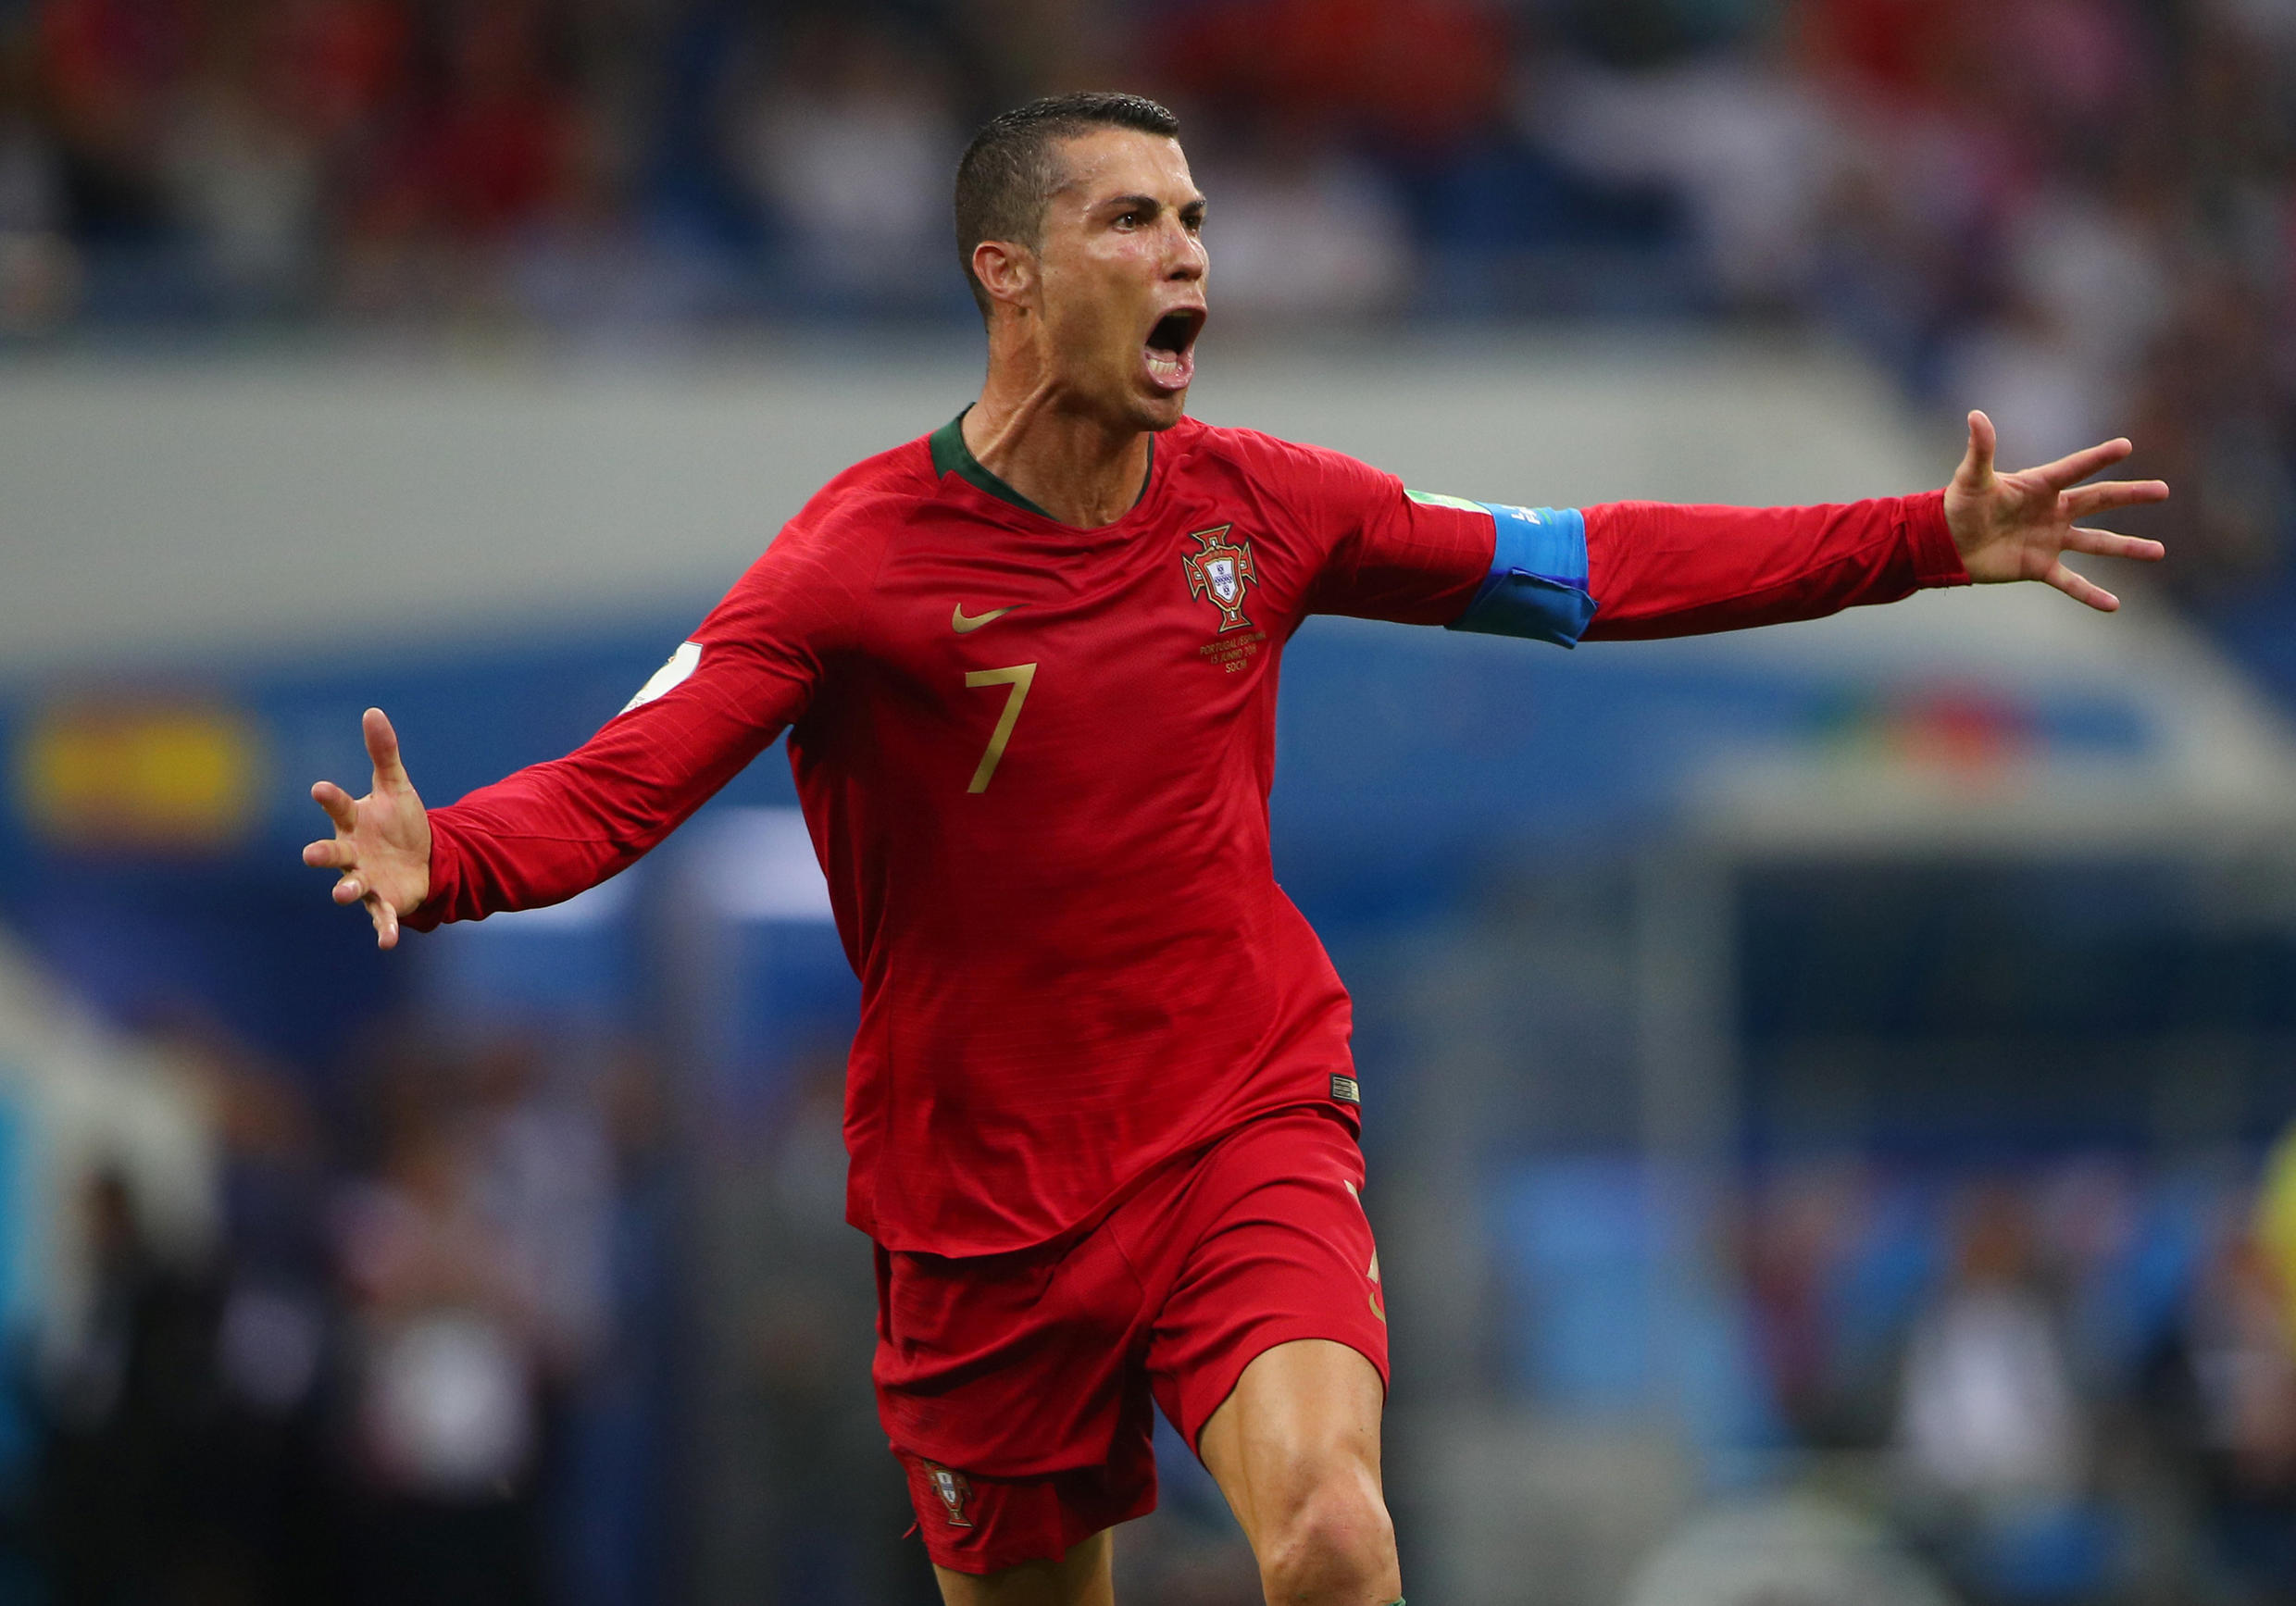 Cristiano Ronaldo after scoring Portugal's third goal against Spain on 15 June